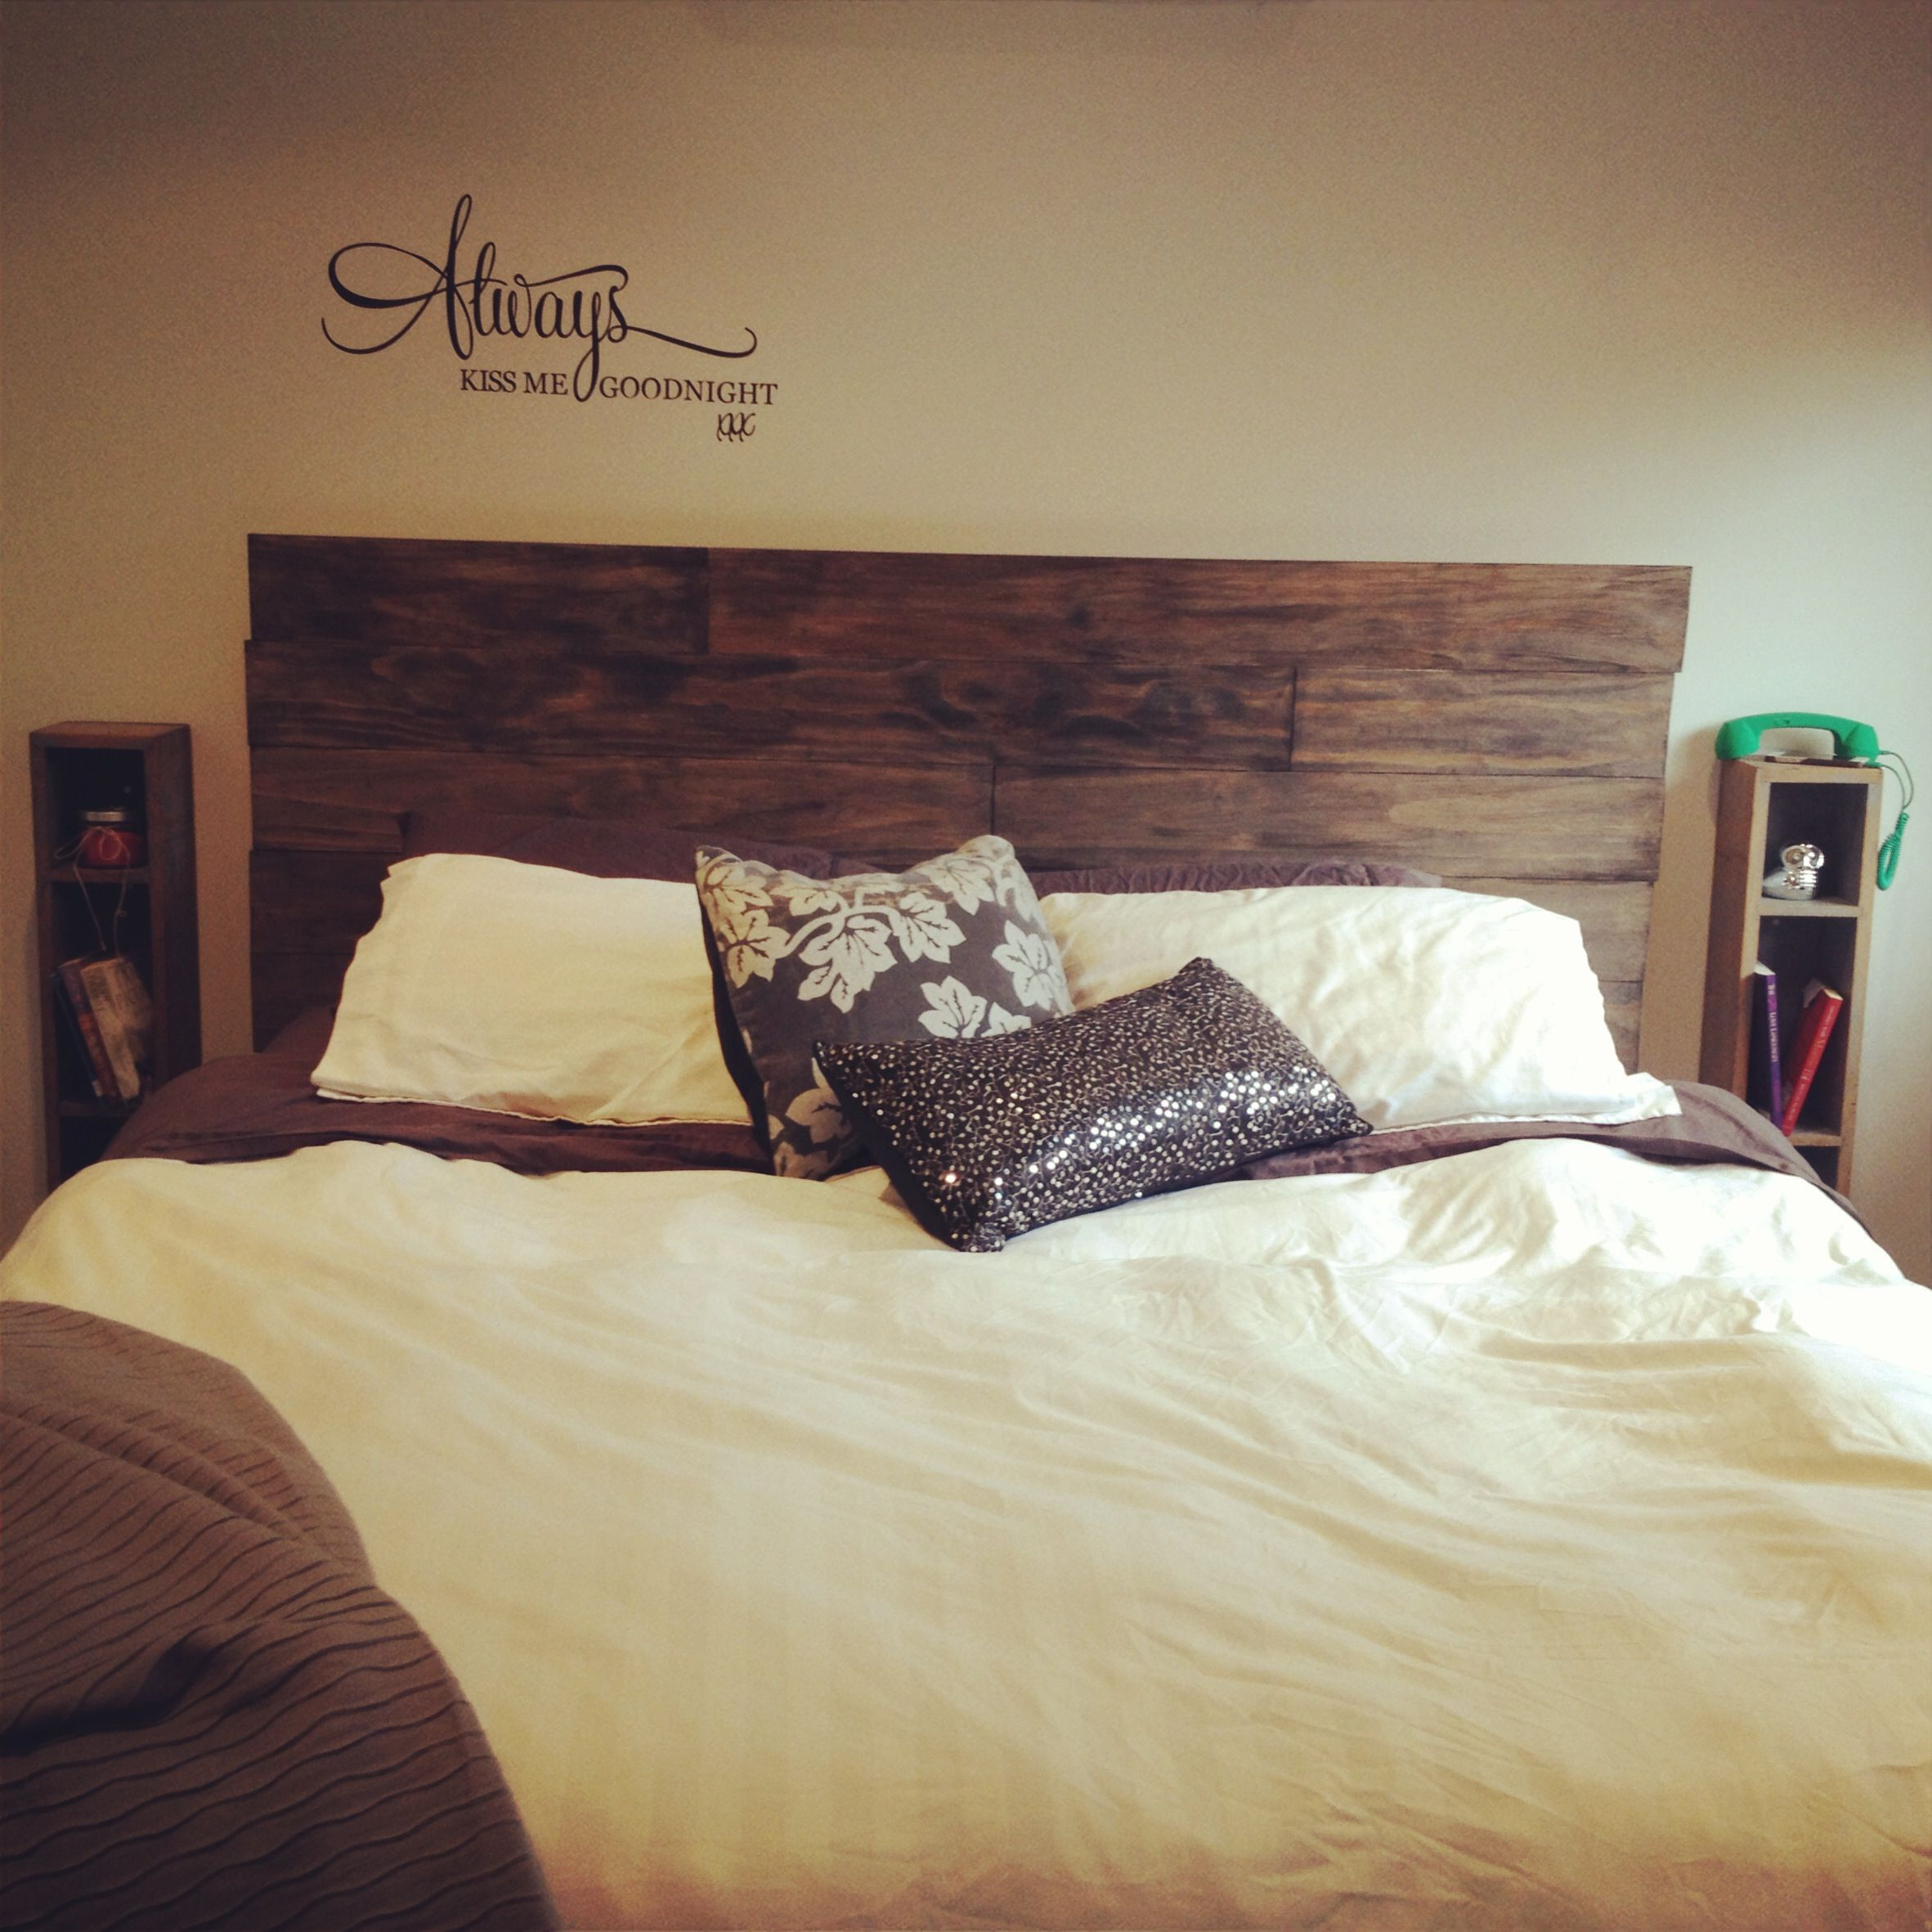 Diy Timber Bed Head Distressed Treated Pine With Hammer Chains Etc Then Stained It Grey Too Easy